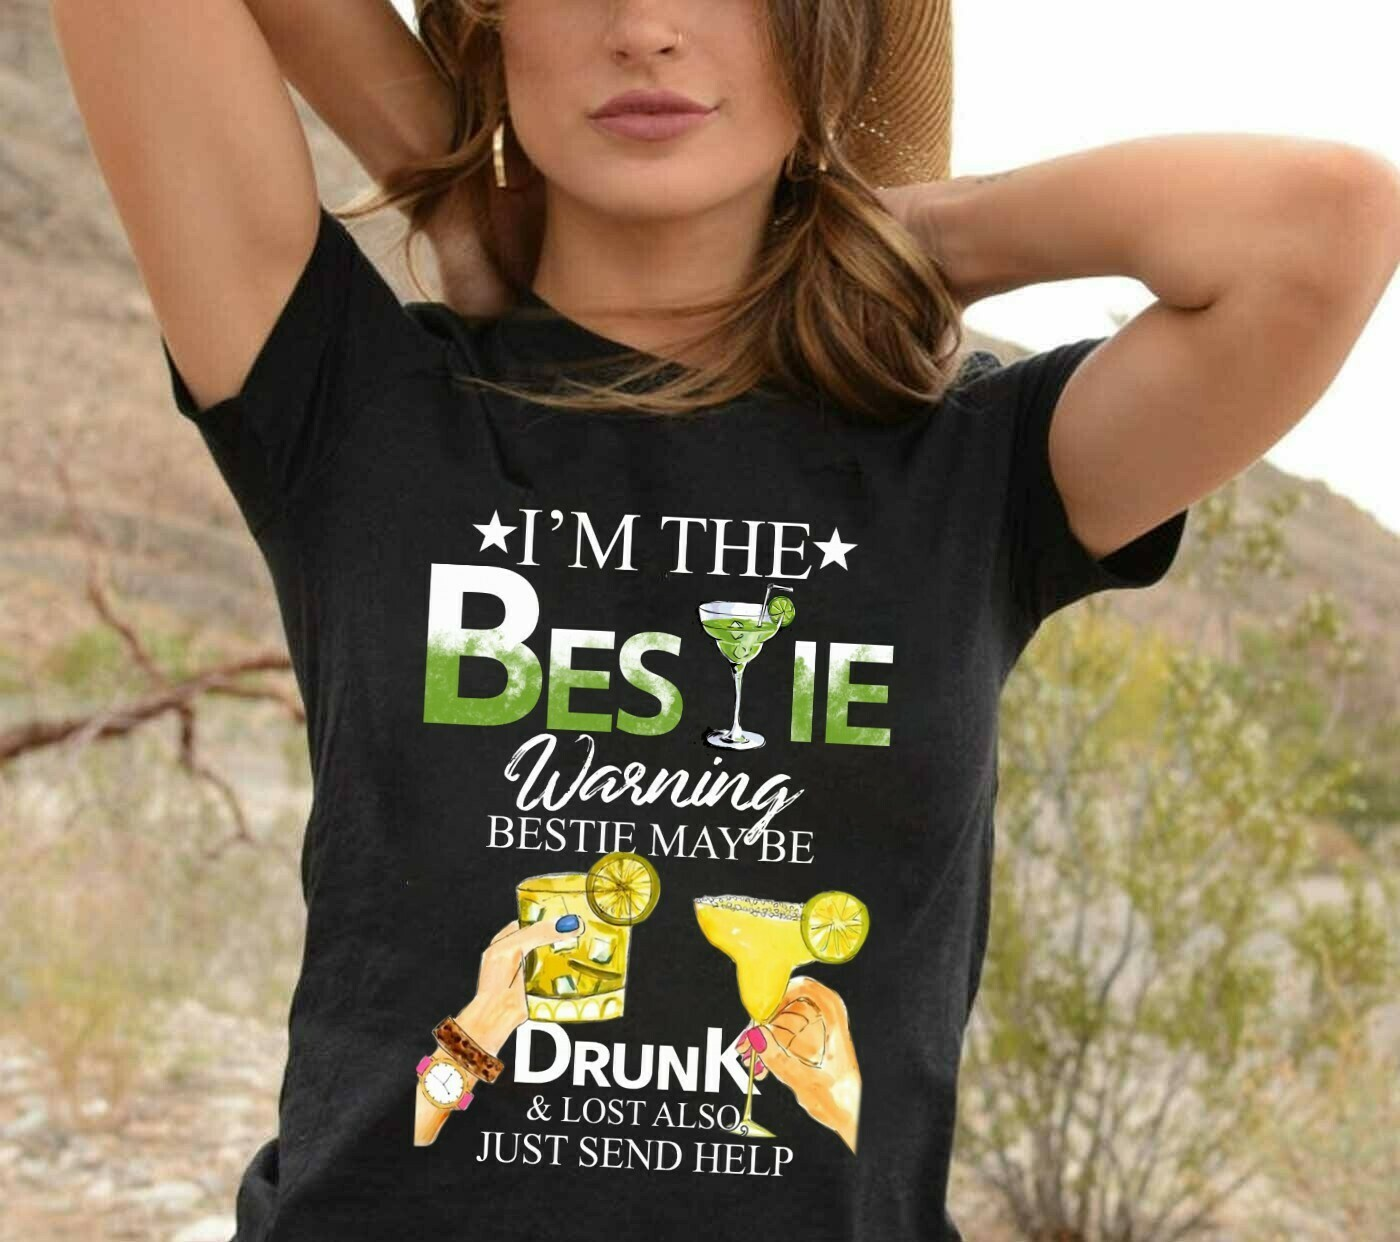 I'm The Bestie Warning Bestie Will Be Drunk And Lost Also Just Send Help,I'm The Help T-shirt Matching Bestie Gift Tee T-shirt Long Sleeve Sweatshirt Hoodie Jolly Family Gifts